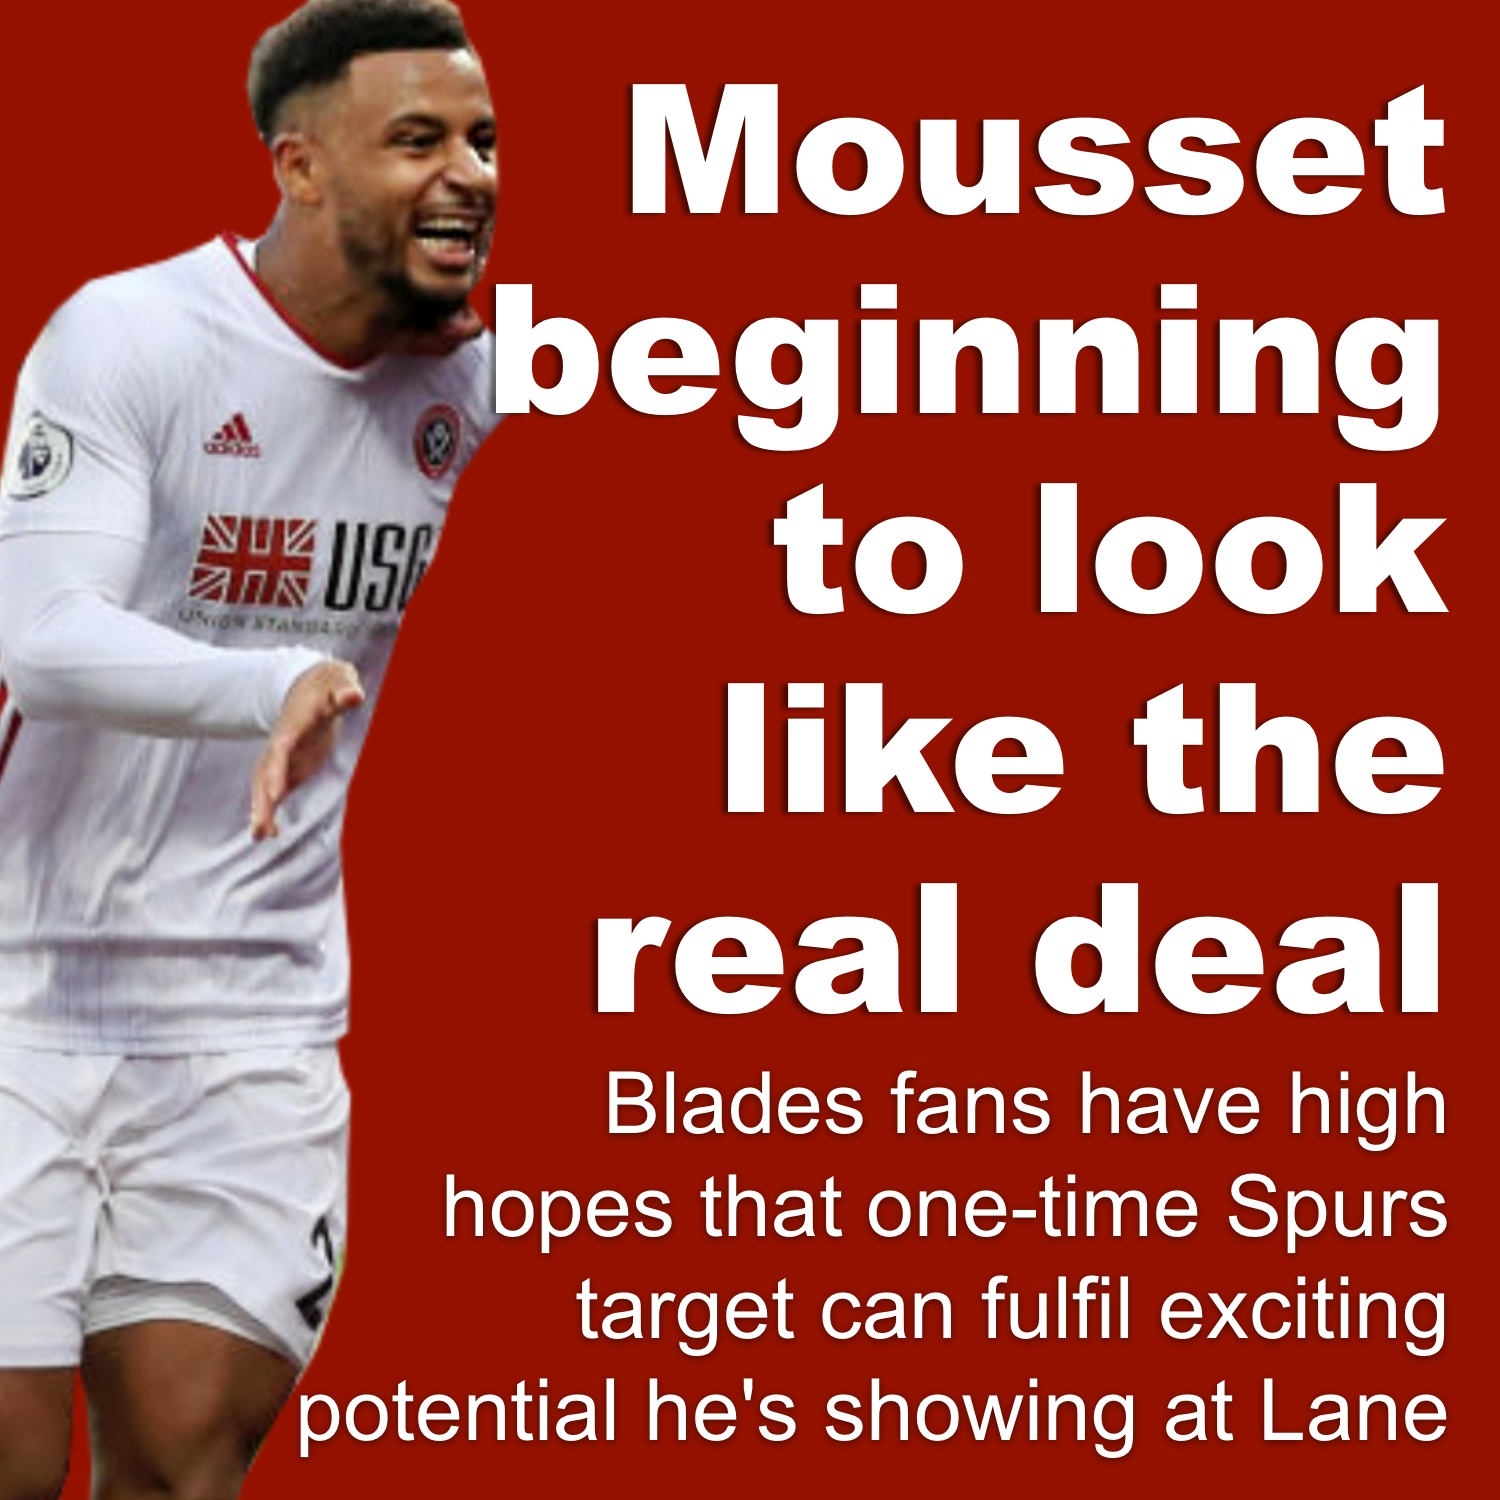 Sheffield United's £10million striker Lys Mousset beginning to look like real deal at Bramall Lane